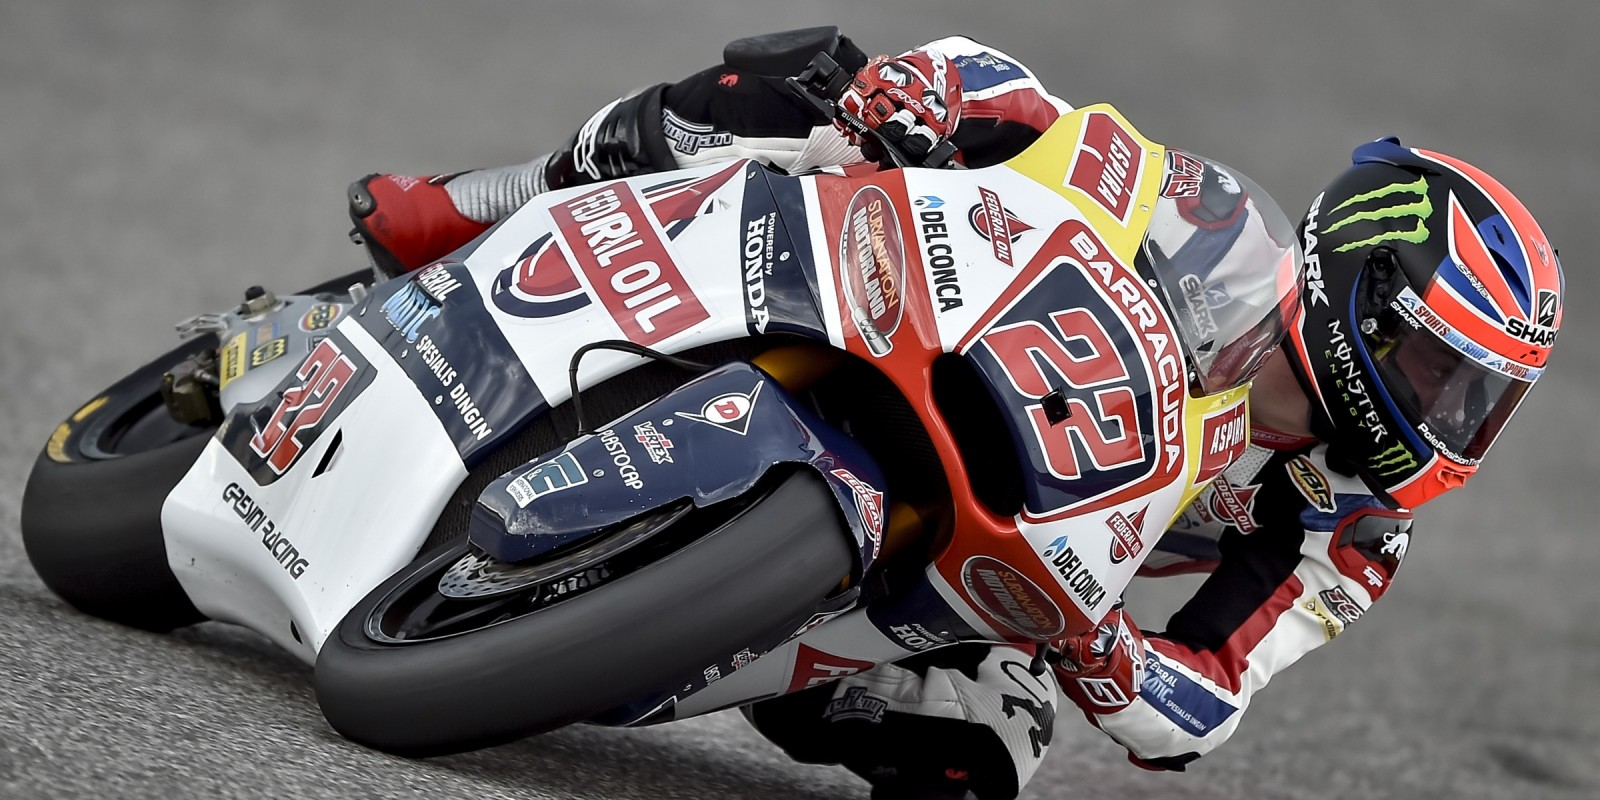 Sam Lowes at the 2016 Grand Prix of The Americas